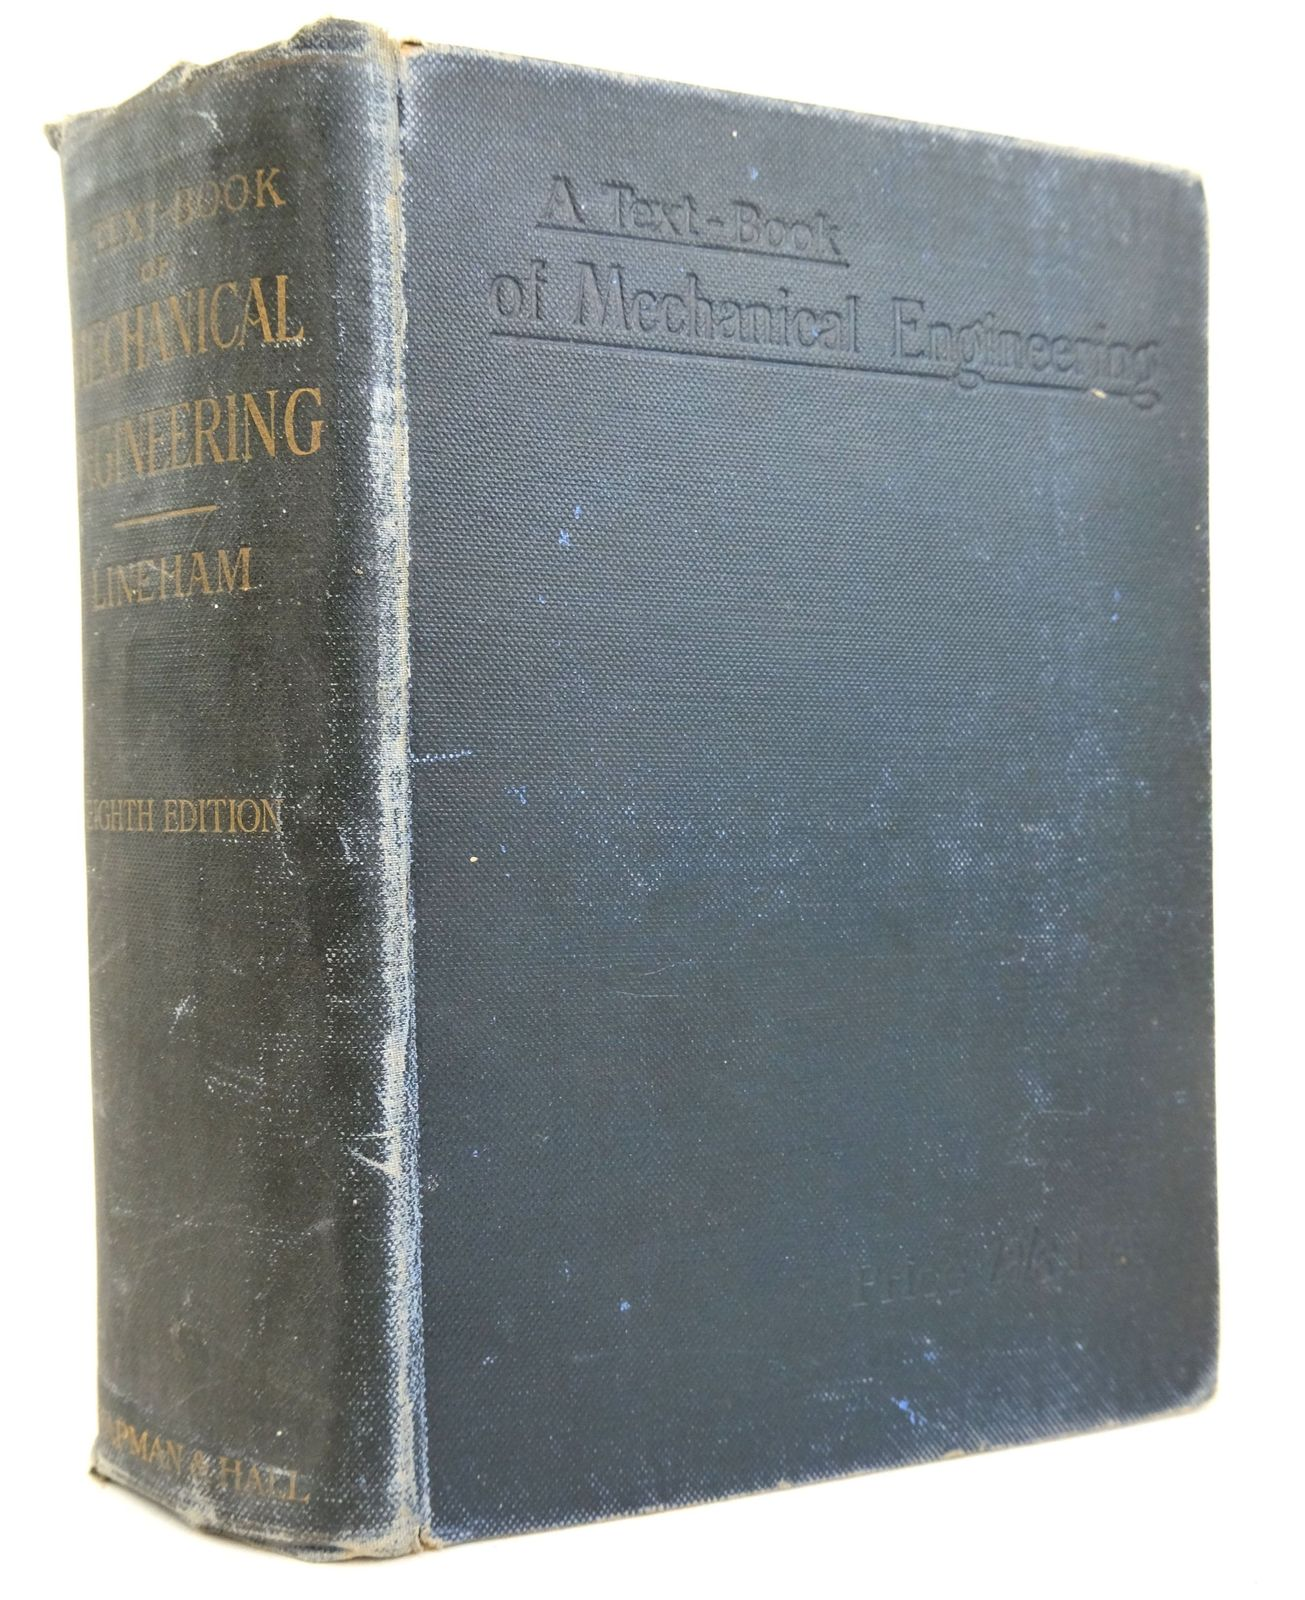 Photo of A TEXT-BOOK OF MECHANICAL ENGINEERING written by Lineham, Wilfrid J. published by Chapman & Hall Ltd (STOCK CODE: 1819590)  for sale by Stella & Rose's Books